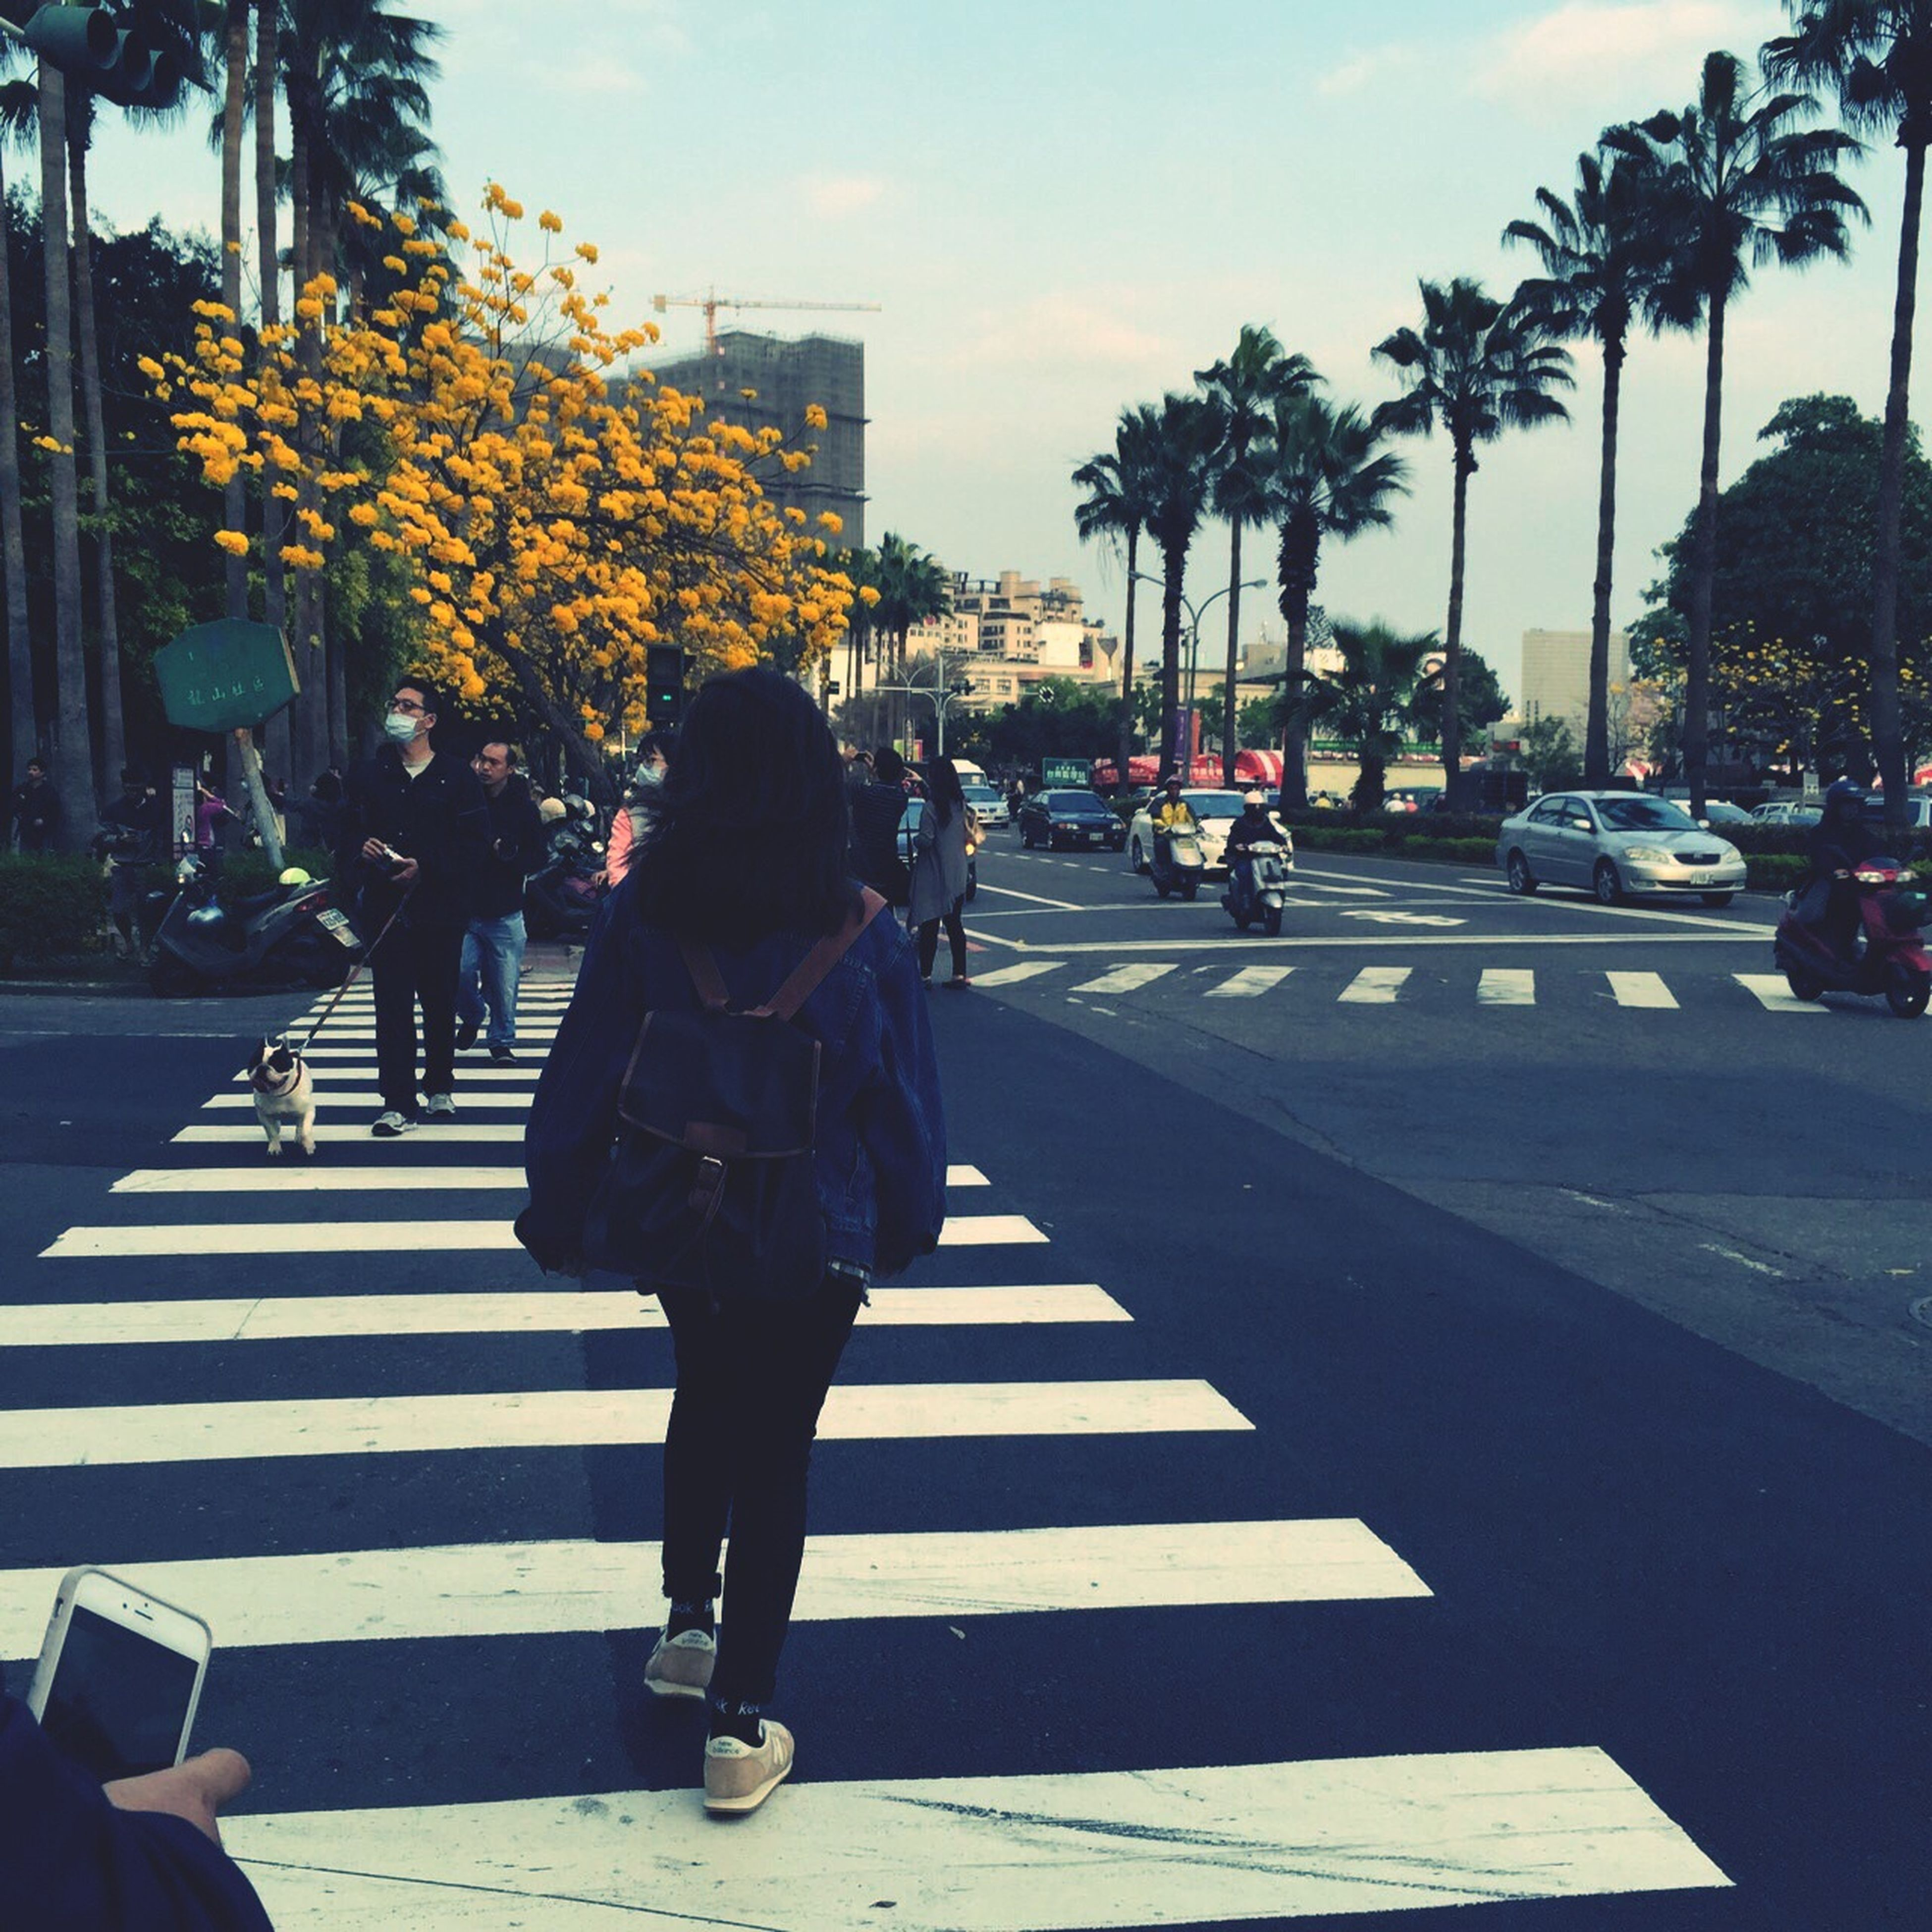 lifestyles, leisure activity, walking, street, men, person, tree, rear view, full length, palm tree, city life, road, sky, city, transportation, casual clothing, outdoors, the way forward